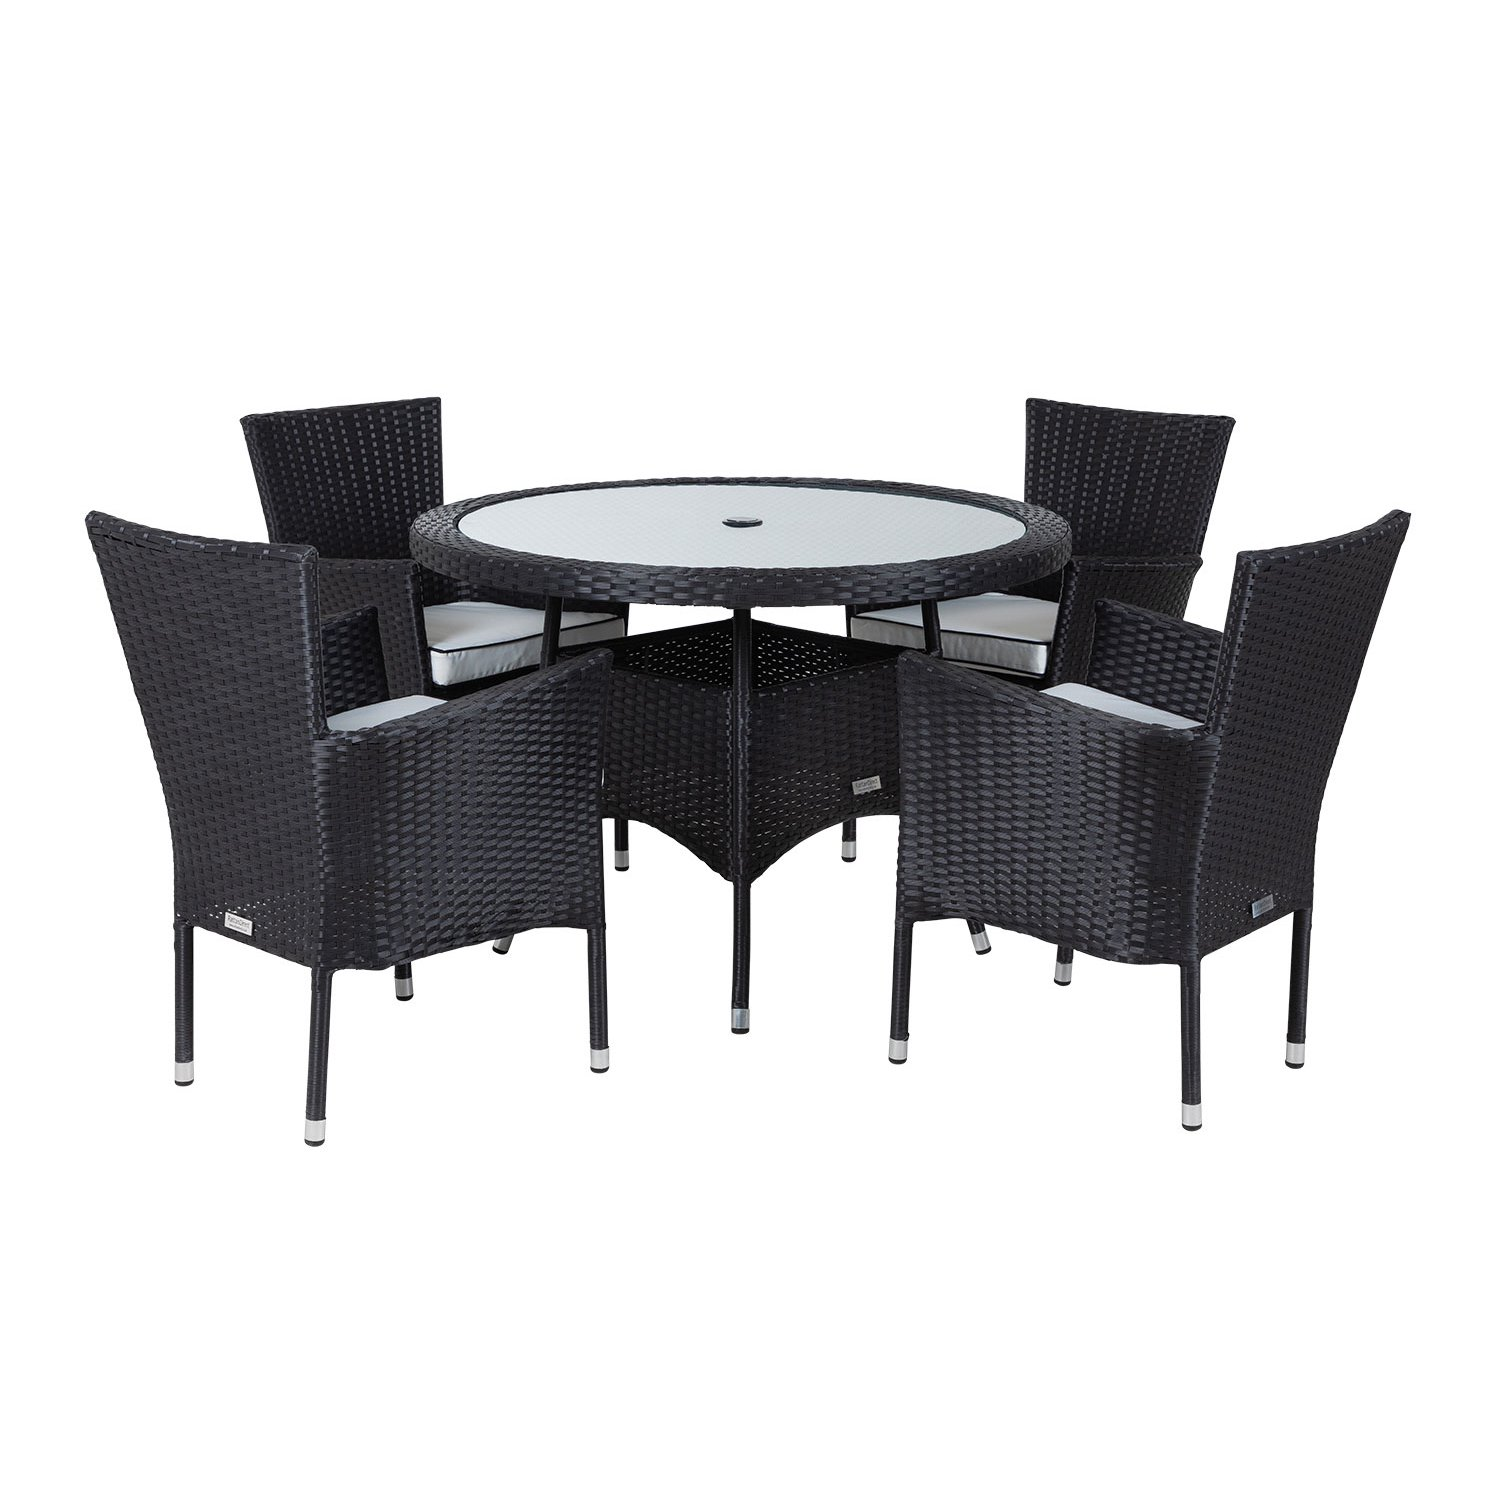 image-Cambridge 4 Rattan Garden Chairs and Small Round Dining Table Set in Black and Vanilla